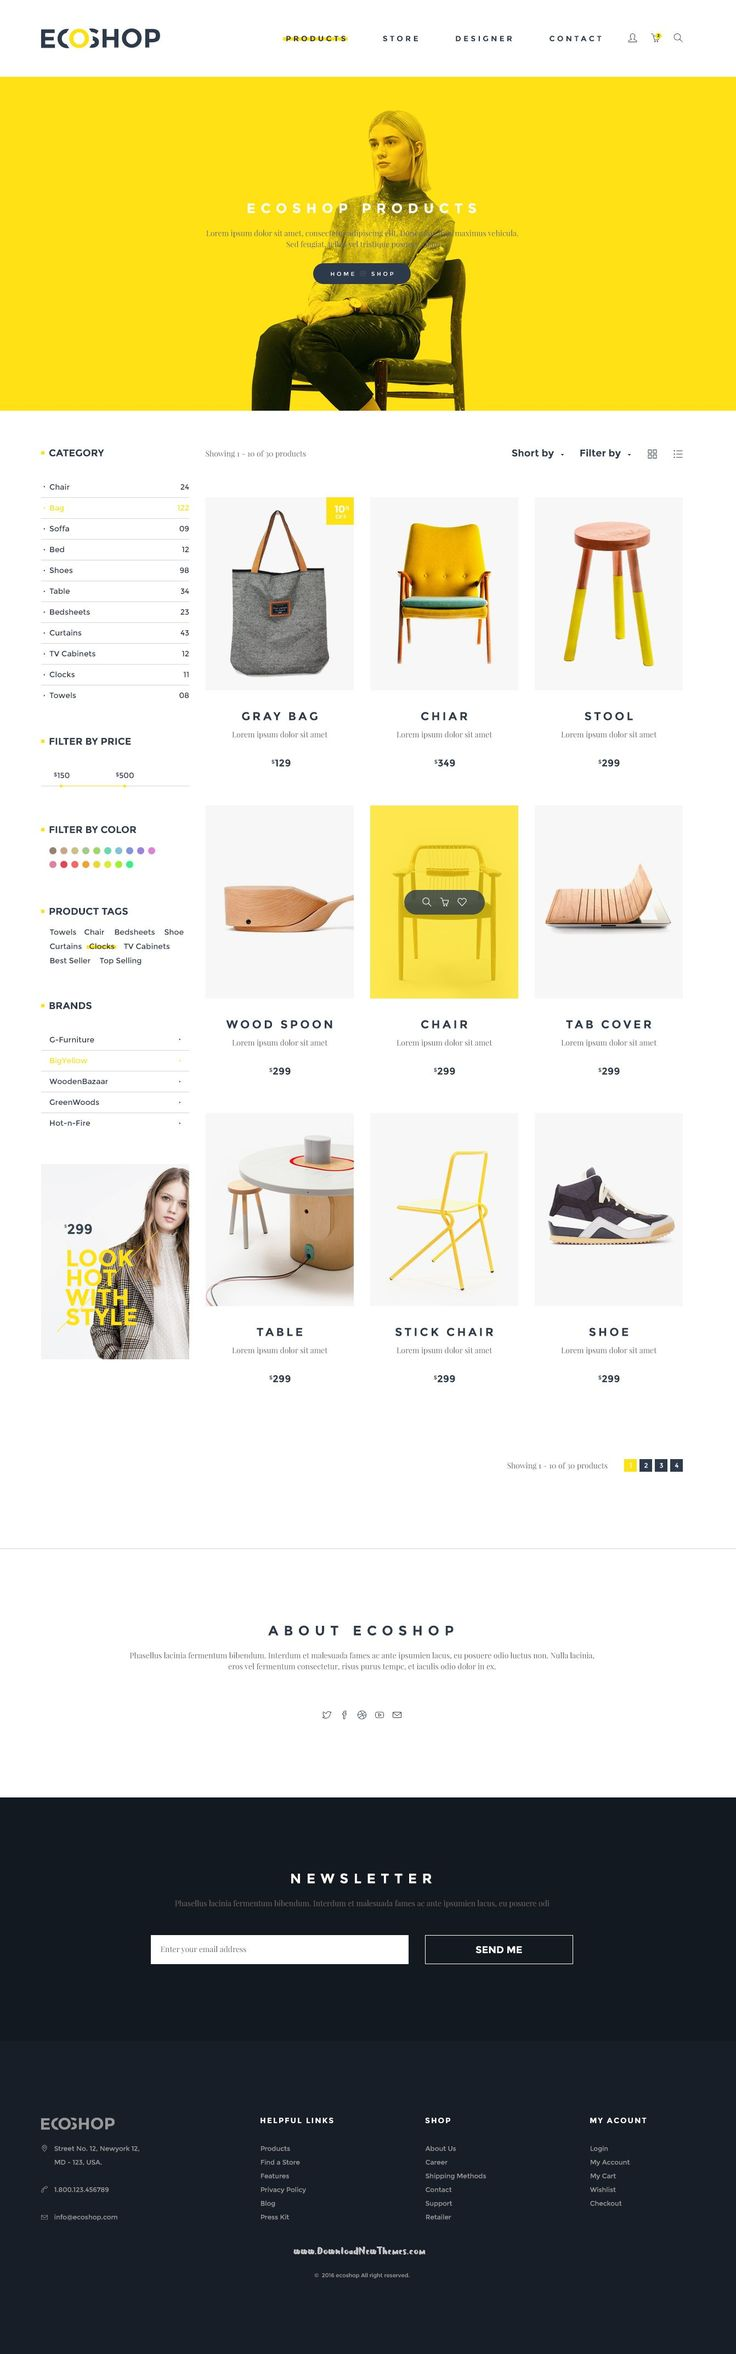 ECOSHOP is high quality eCommerce PSD Templates which designed for commercial use like clothes, cosmetics, #furniture, gadgets, shoes, bags, home #decor etc. Download Now➝ http://themeforest.net/item/ecoshop-multipurpose-ecommerce-psd-template/15514462?ref=Datasata